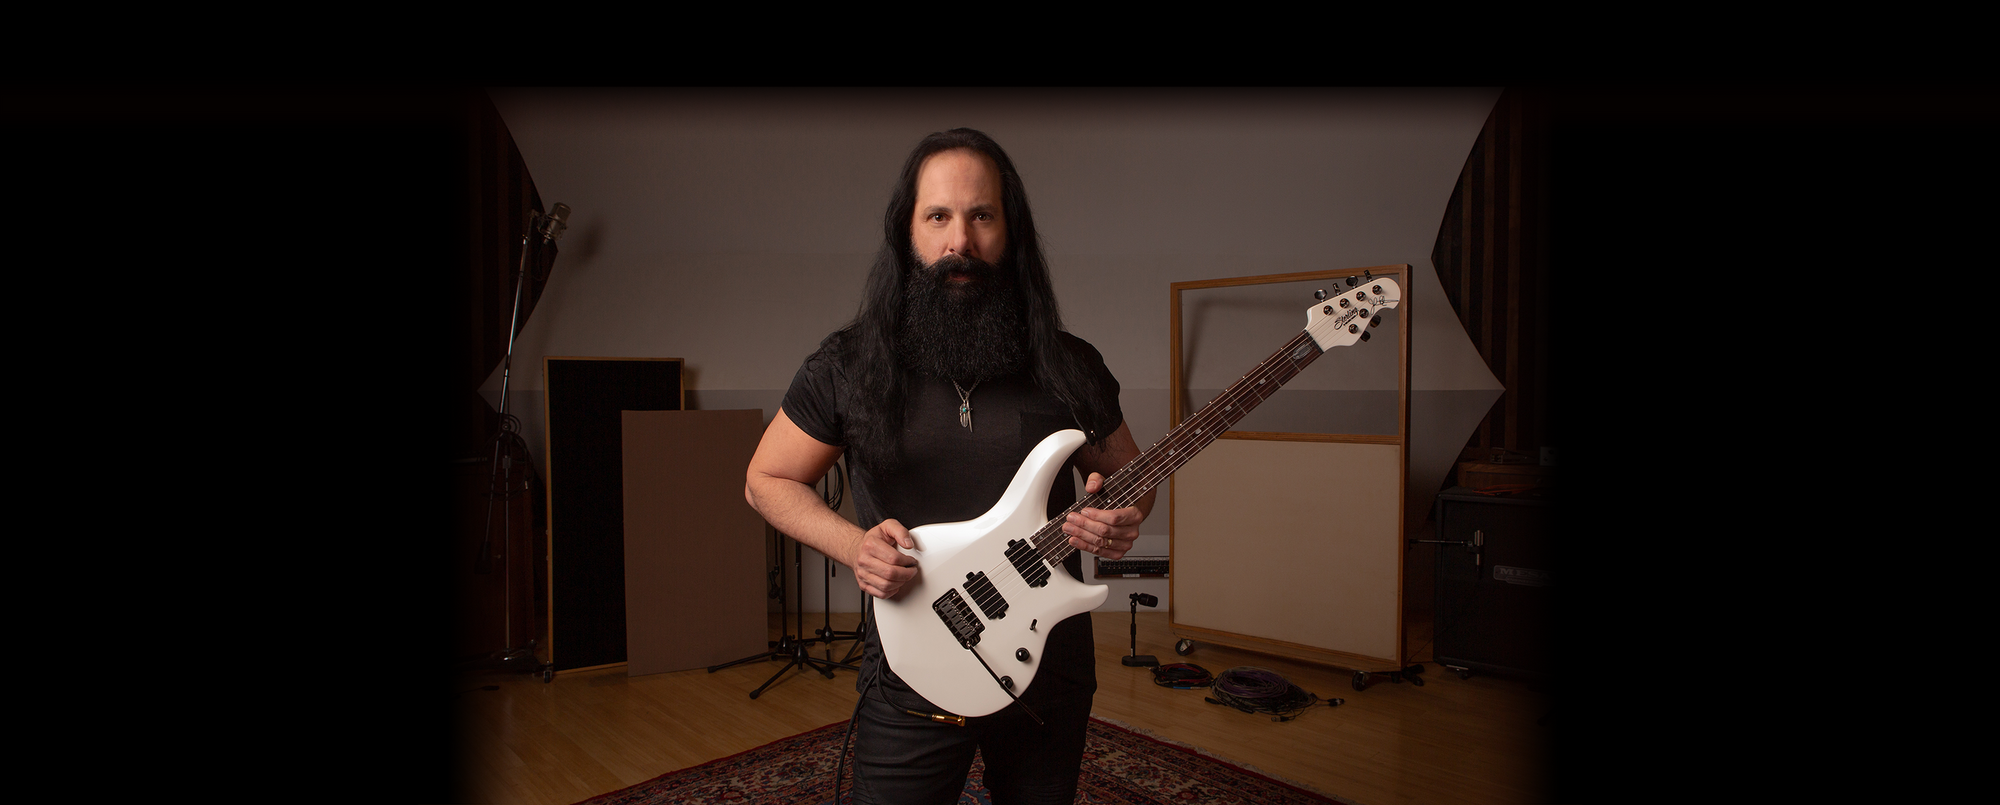 John Petrucci holding the Majesty 7 guitar in Pearl White.